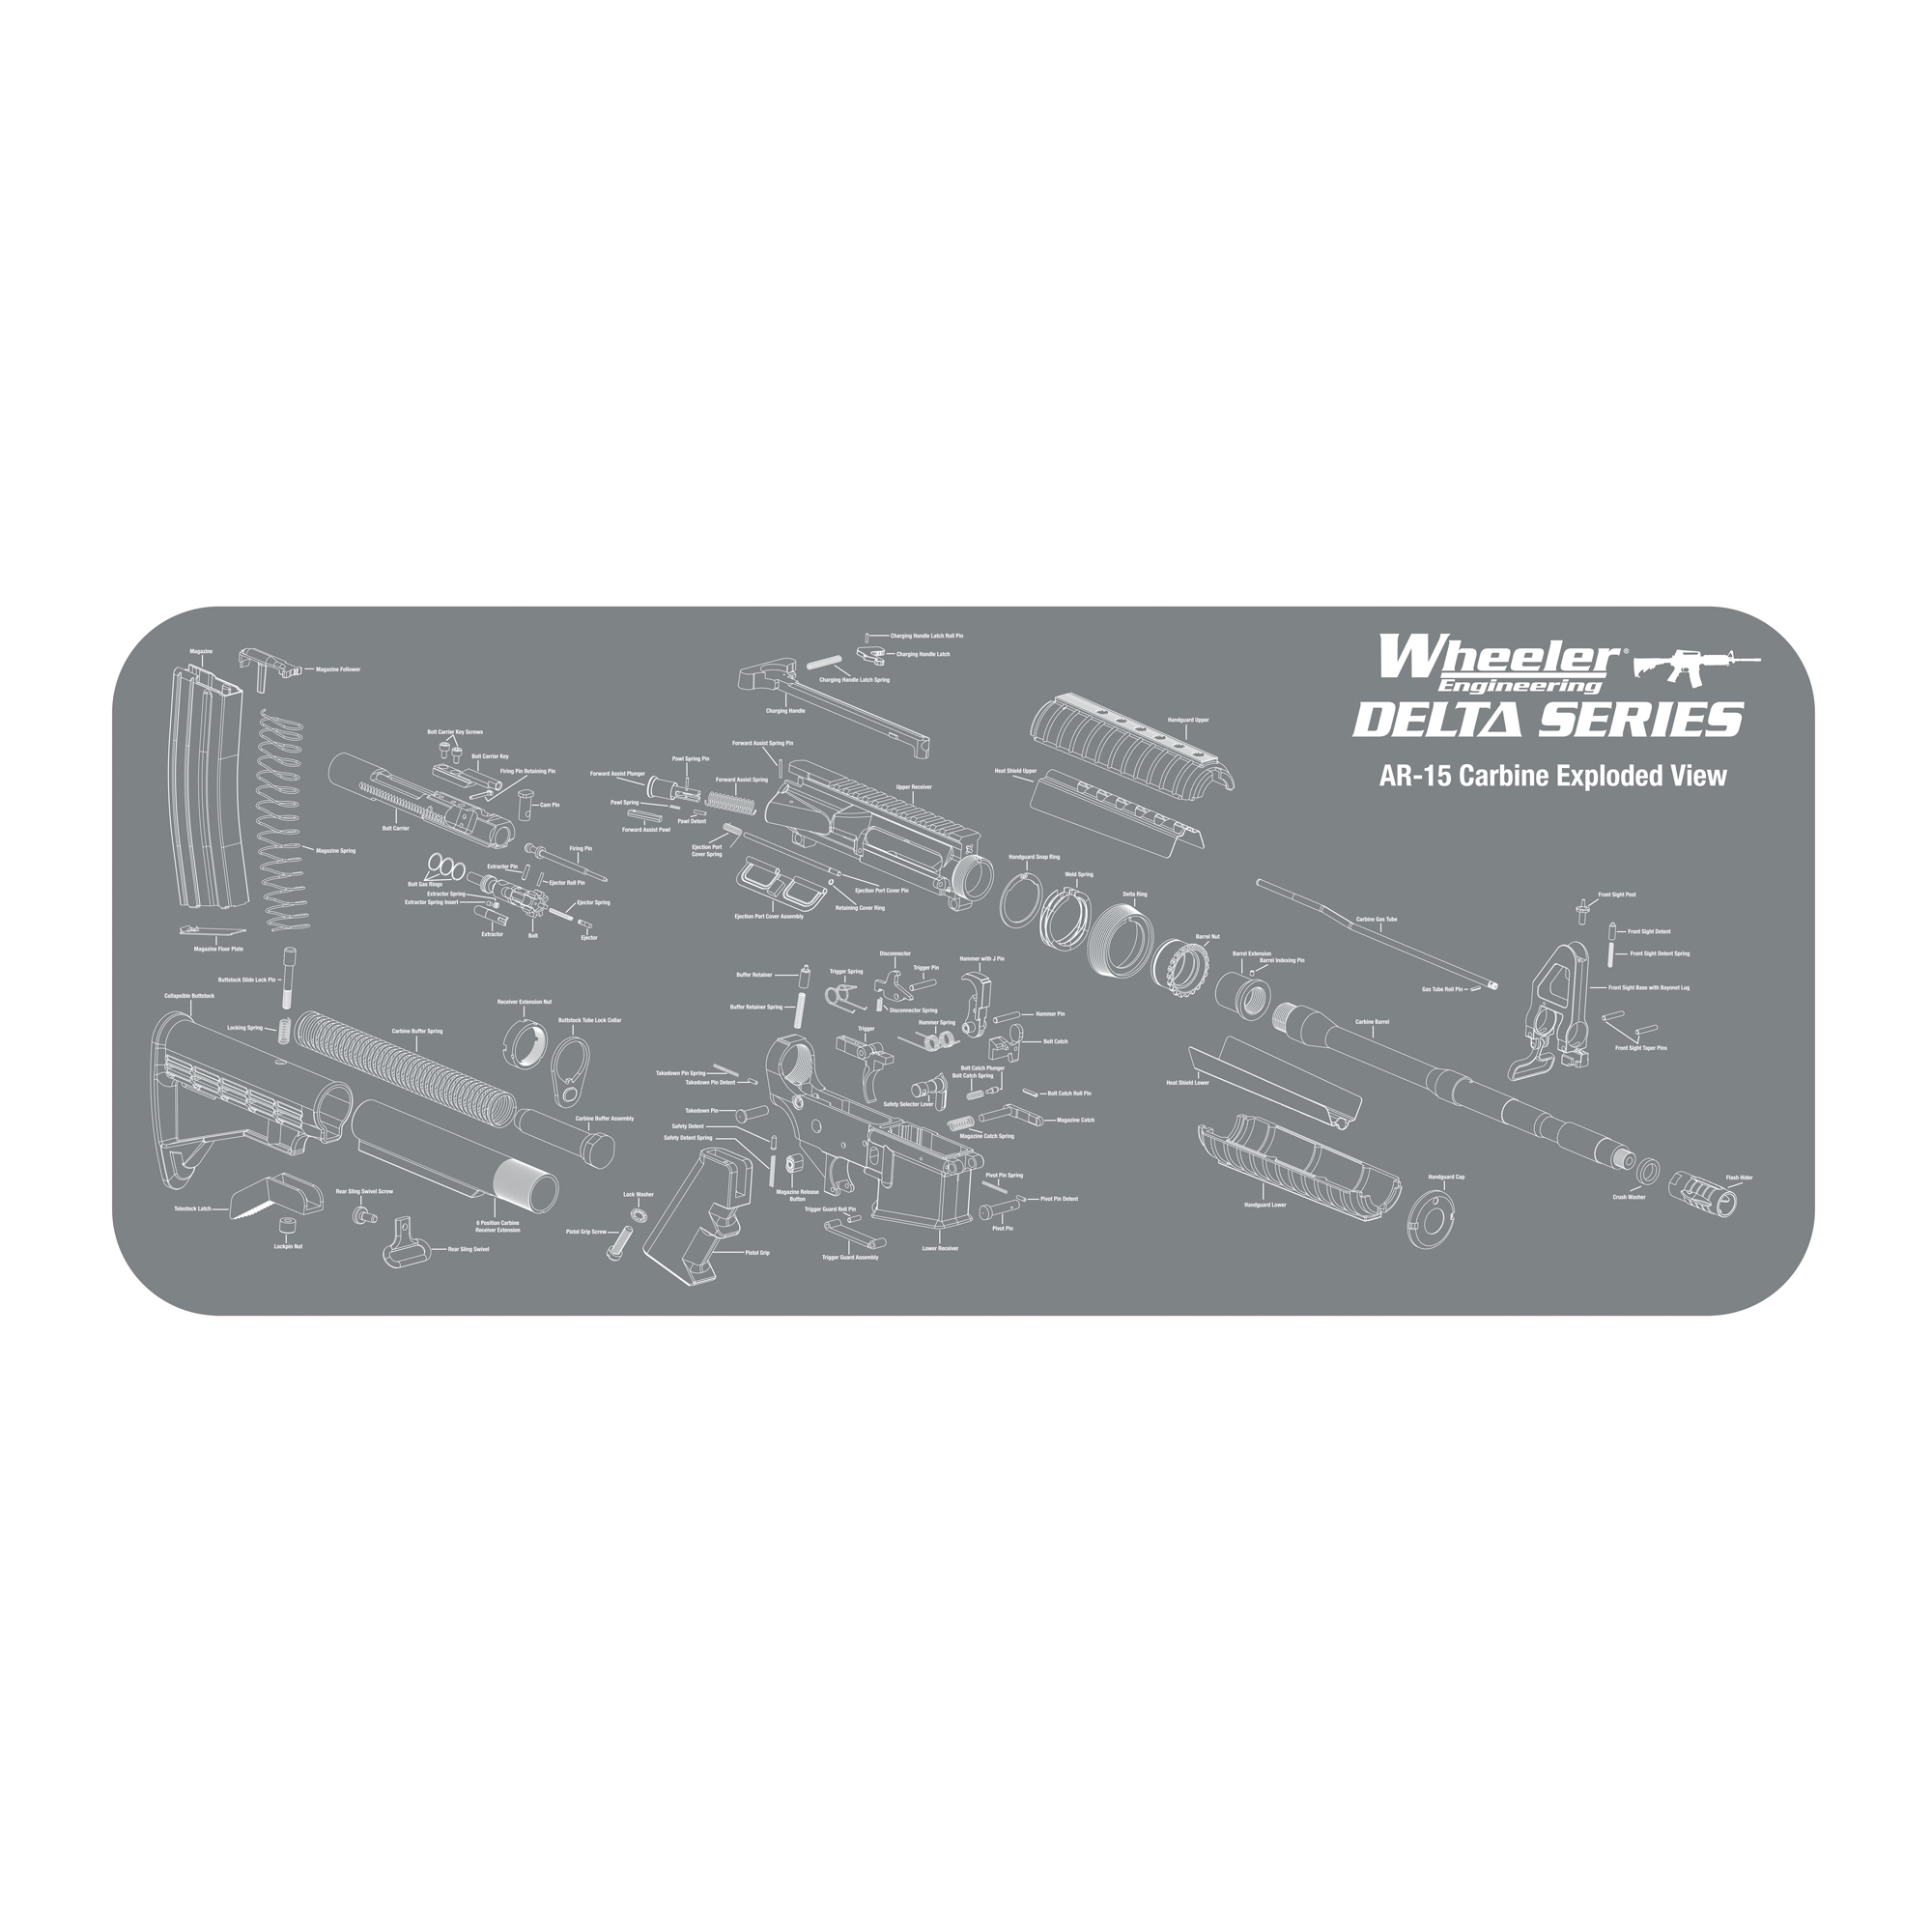 """The Wheeler Delta Series AR-15 Maintenance Mat is perfect for any AR-15 owner. It features a screen printed expanded view of an AR-15 Carbine to easily identify the parts of your rifle. The Mat is made of a dark gray non-marring padded neoprene material with a durable non-skid rubber backing to protect firearm finishes while helping to keep track of small parts. Excess oils and solvents are absorbed into the mat"""" keeping the surface clean and dry. Each mat is machine or hand washable with mild detergent and water"""" and can be rolled up to easily fit in your range bag."""